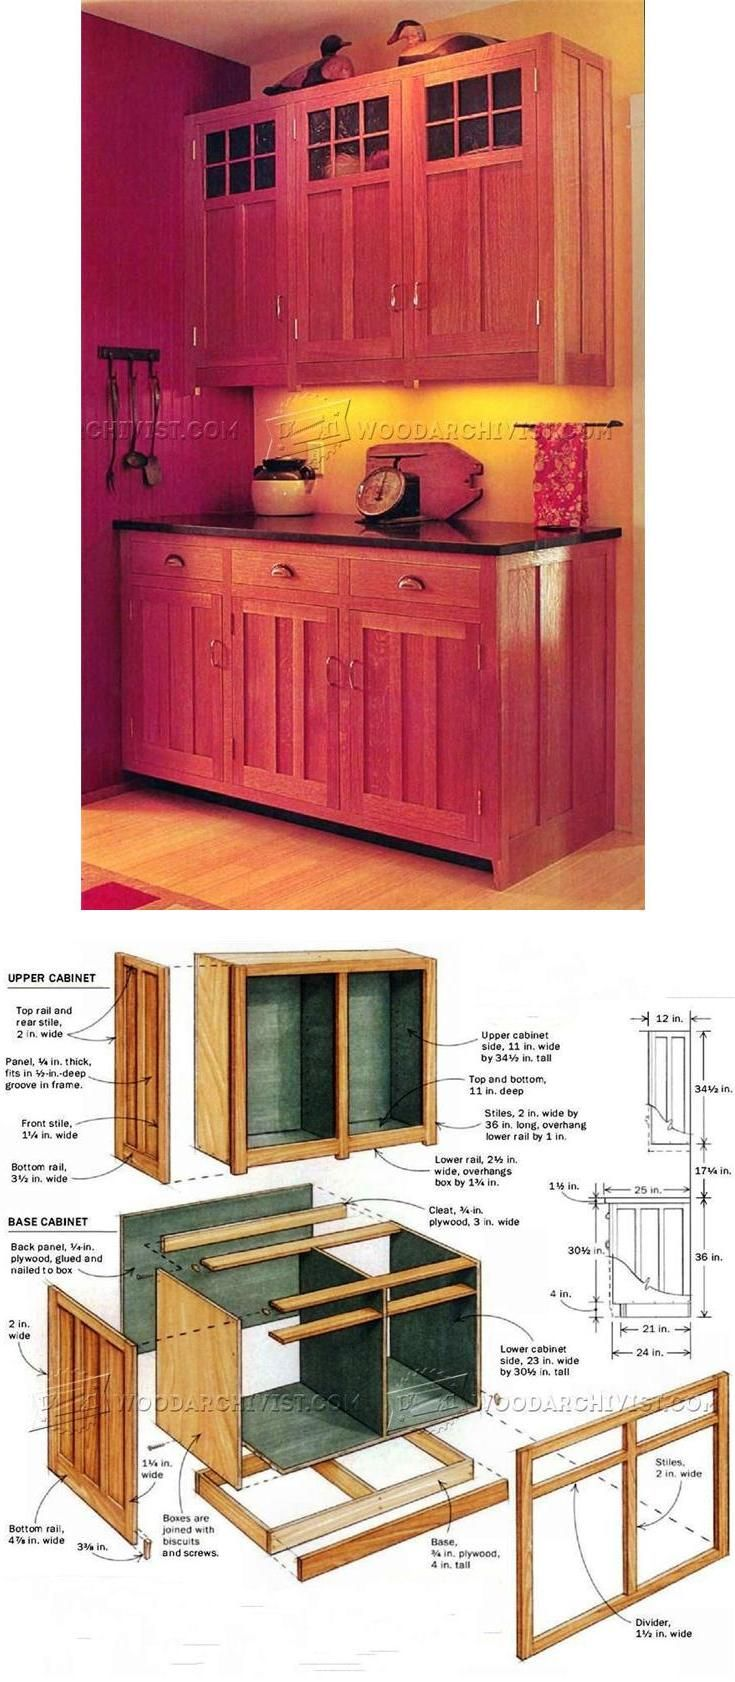 Kitchen cabinets plans furniture plans and projects